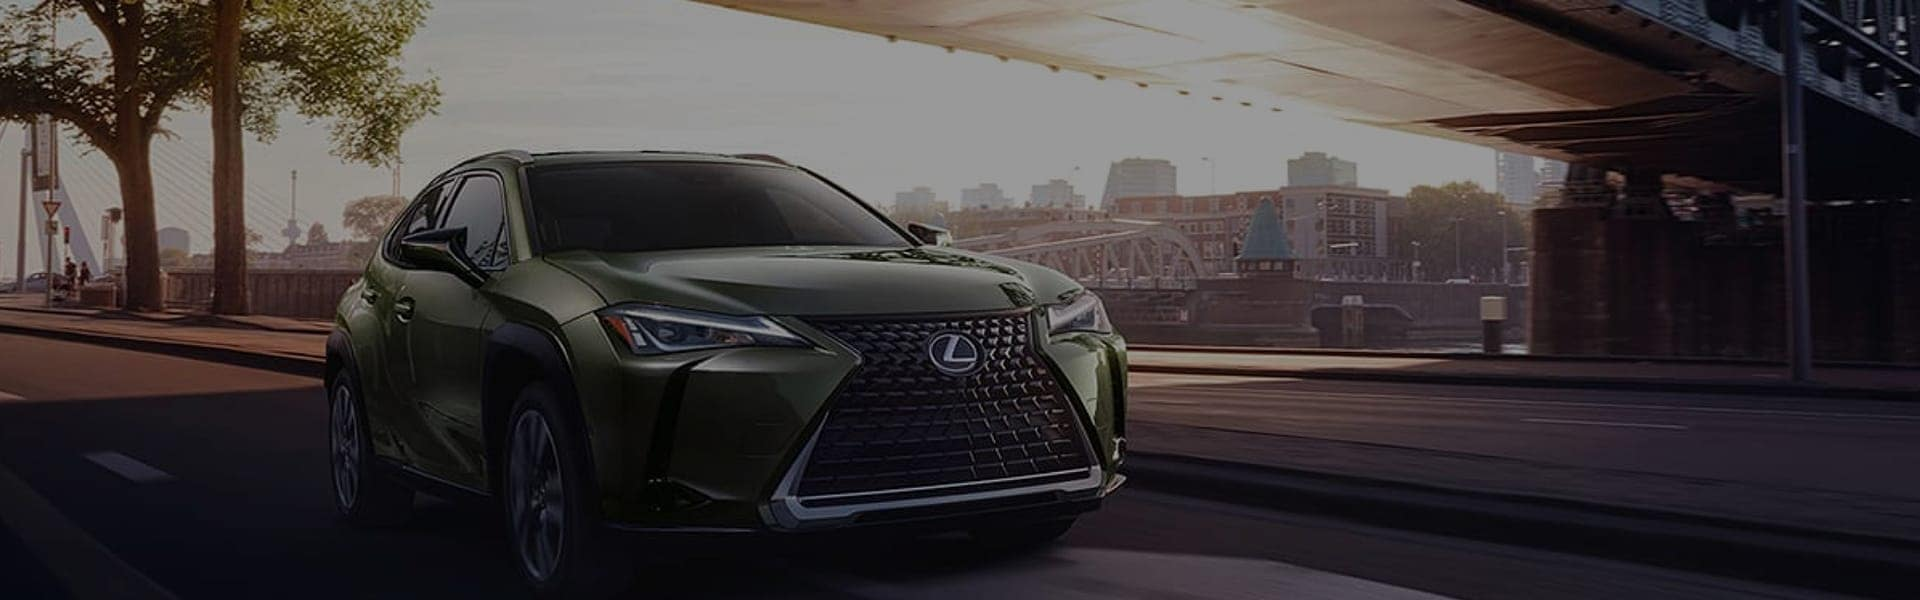 Welcome to Haldeman Lexus of Princeton